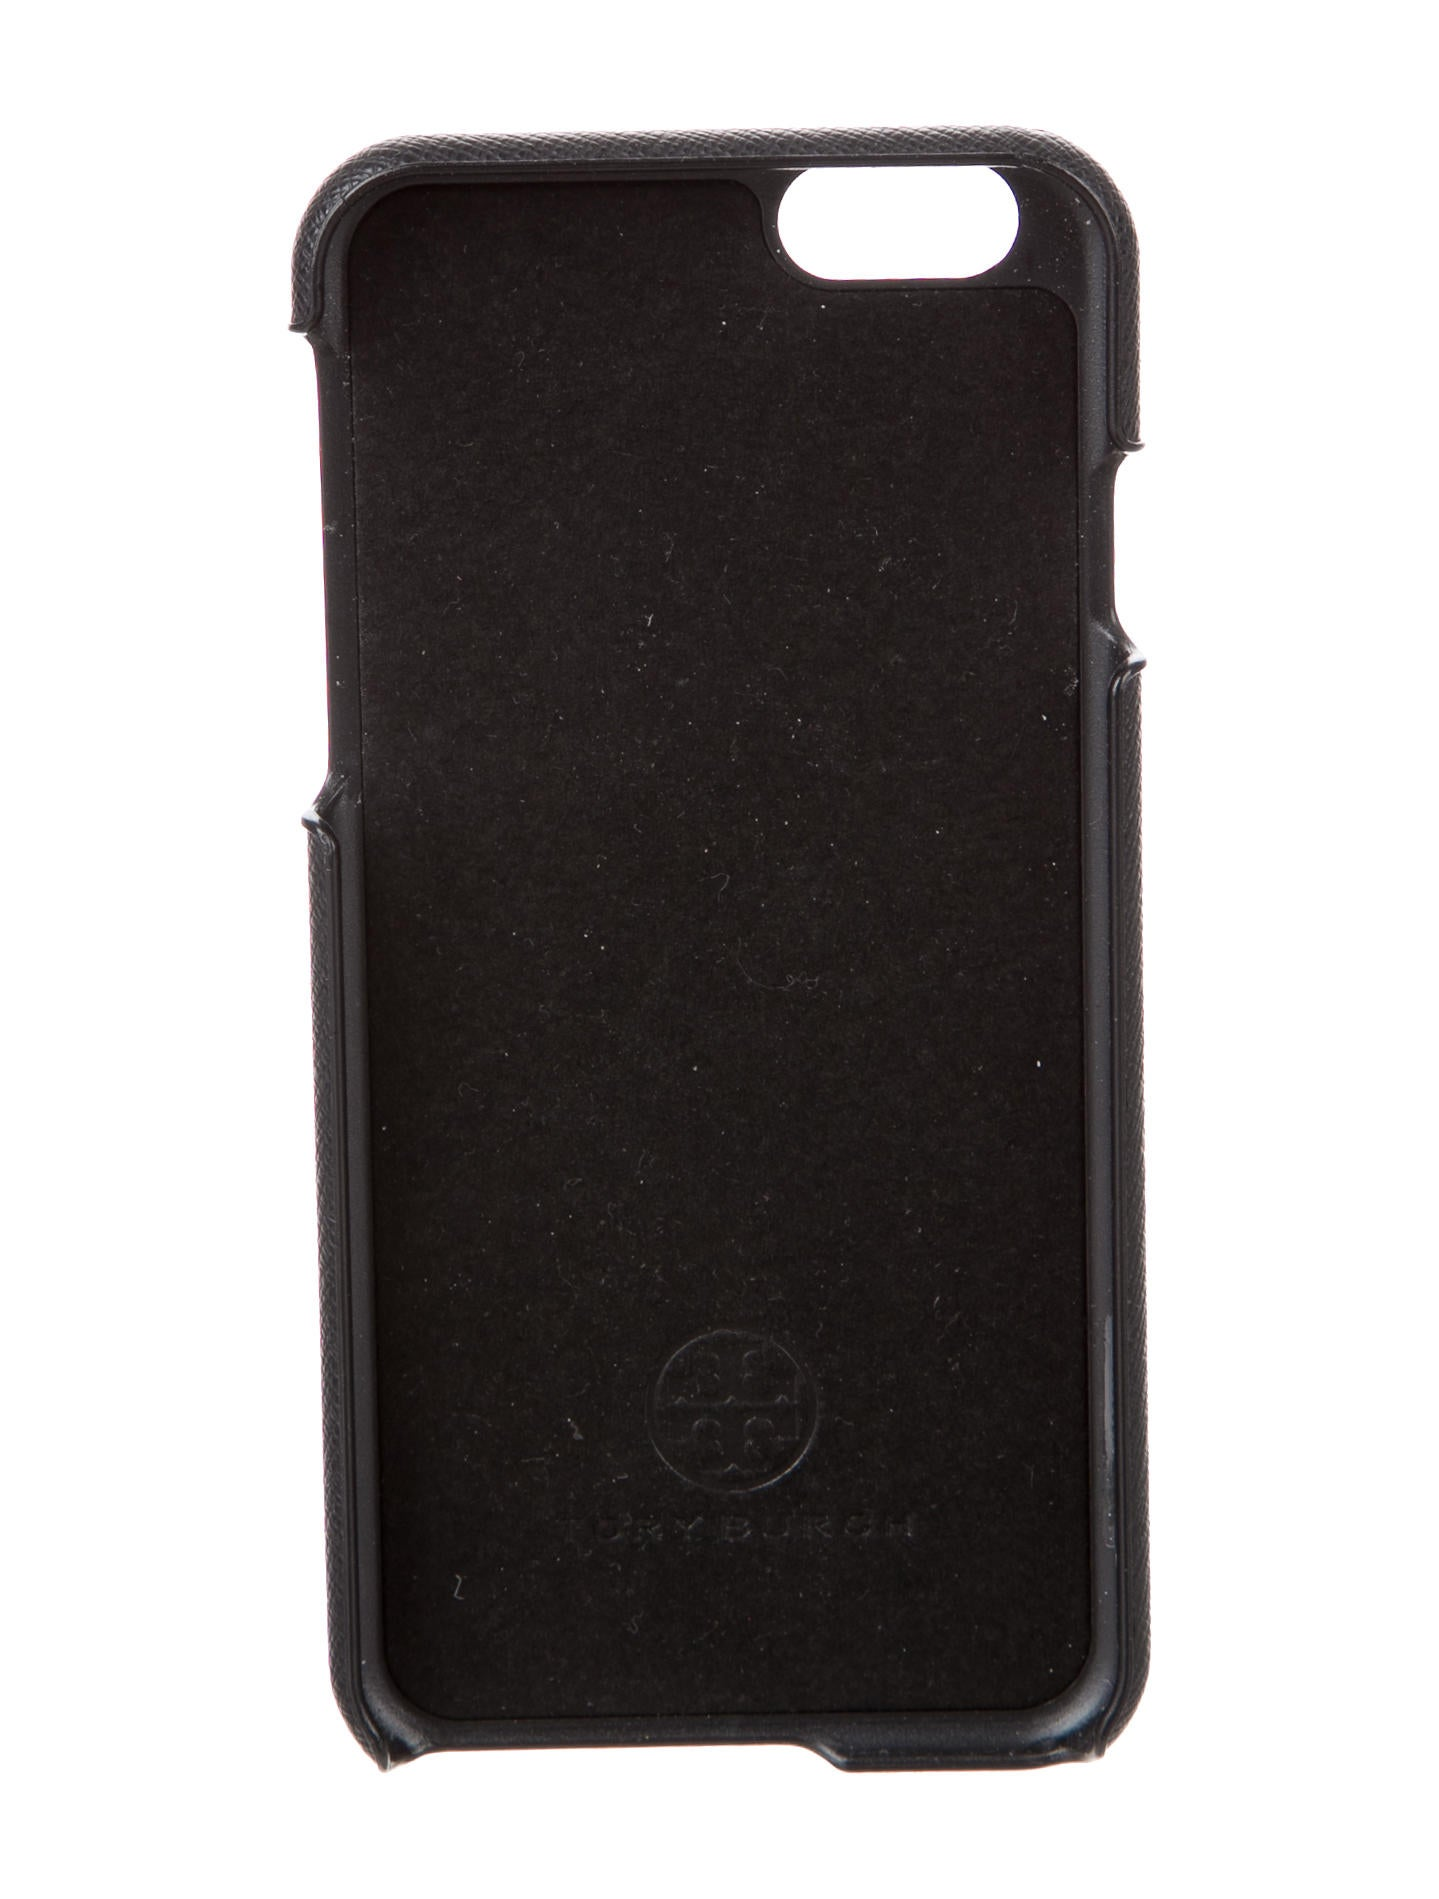 tory burch iphone case burch leather iphone 6 accessories wto91515 5058